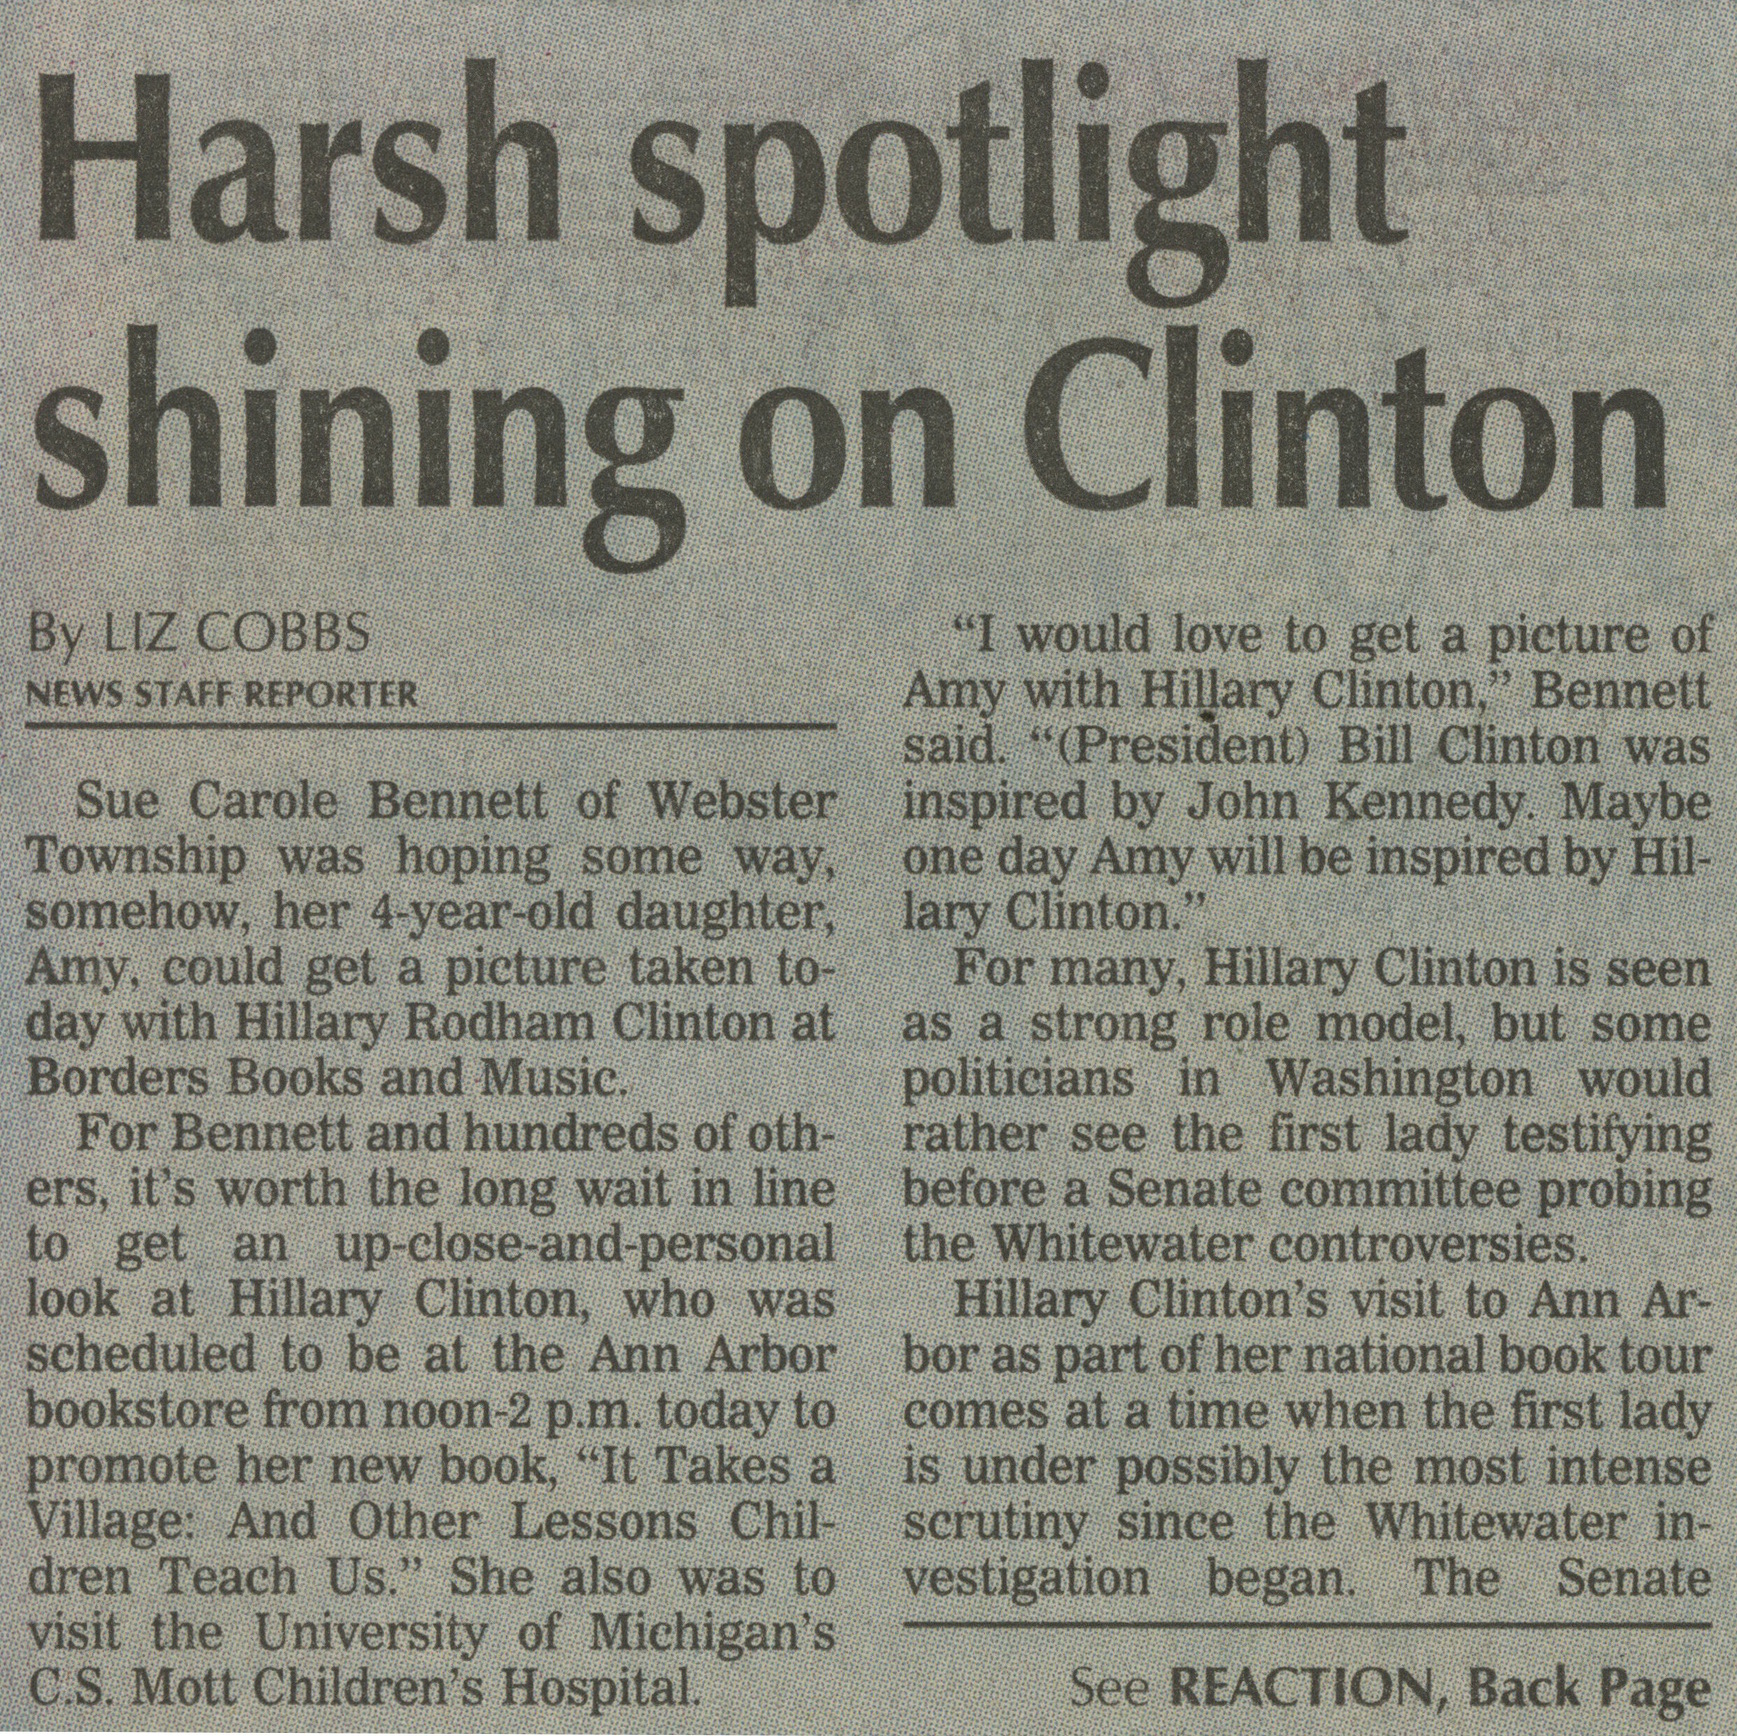 Harsh Spotlight Shining On Clinton image